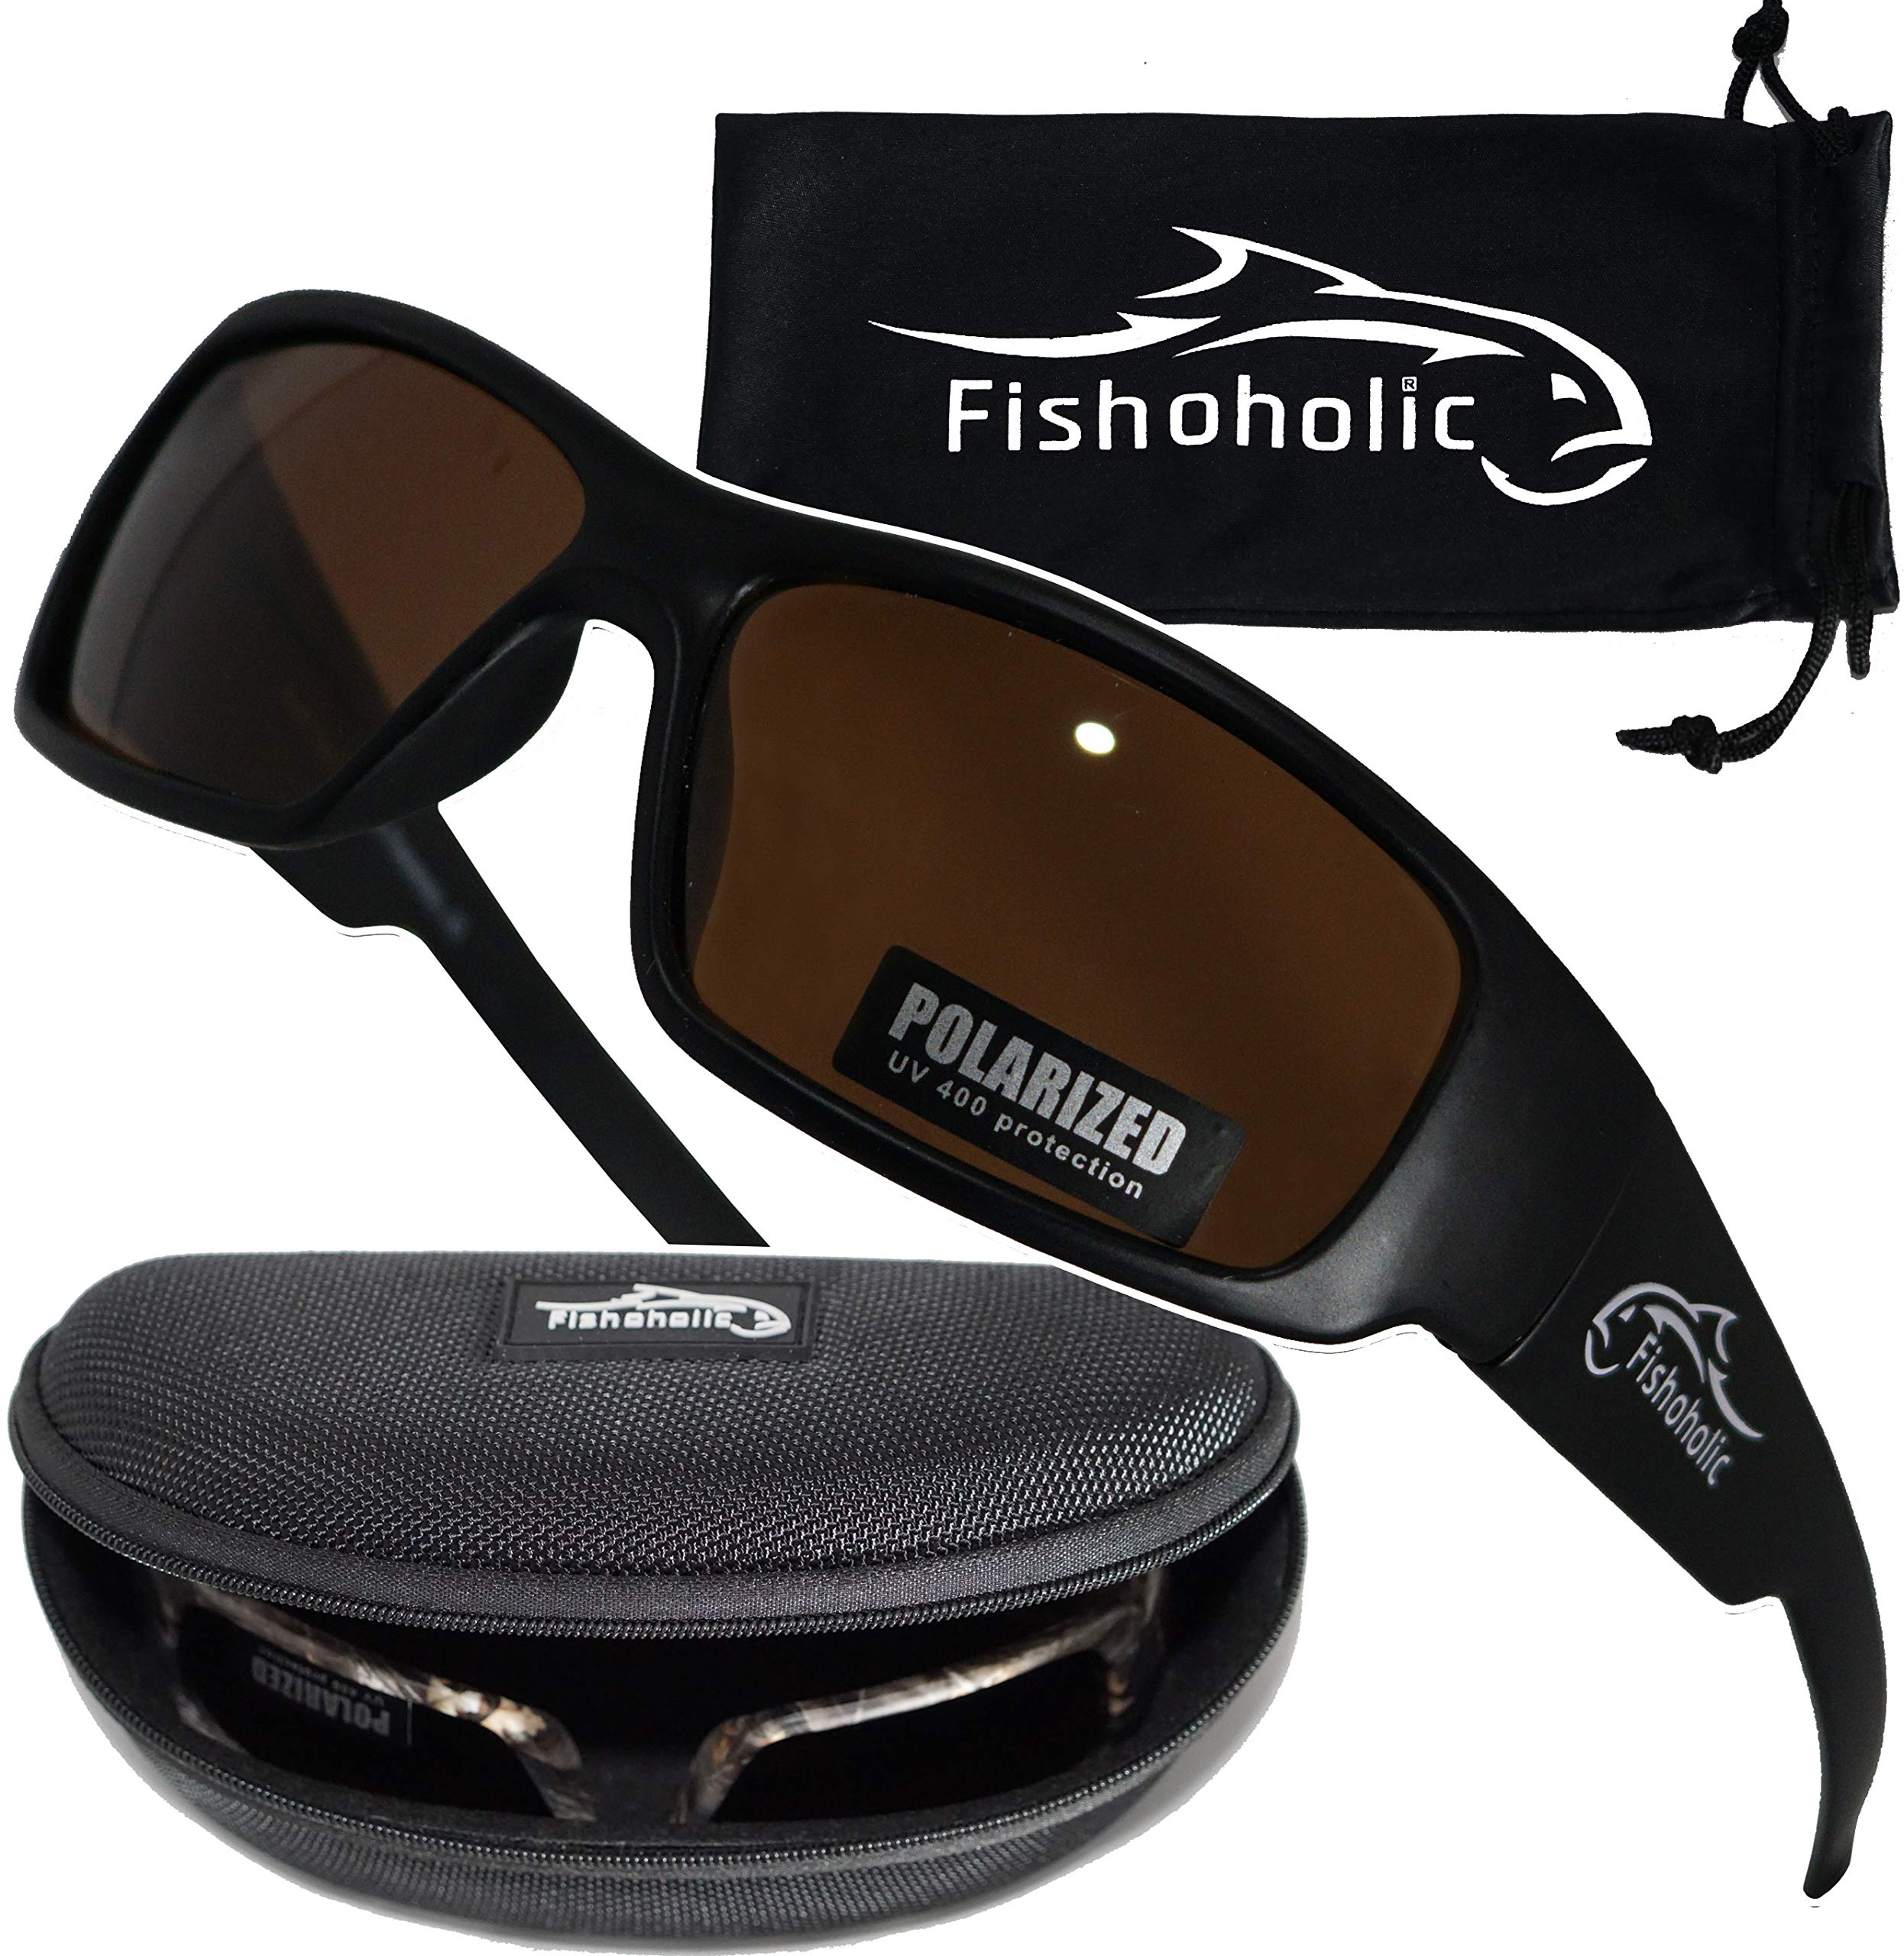 Fishoholic Polarized Fishing Sunglasses (3 Colors: Camo, Amber, Blue Mirror) w Free Hard Case & Pouch UV400 100% UV Sun Protection. Best Gift to Fish River Lake Bass Saltwater Fly (Matte Black, Amber) by Fishoholic